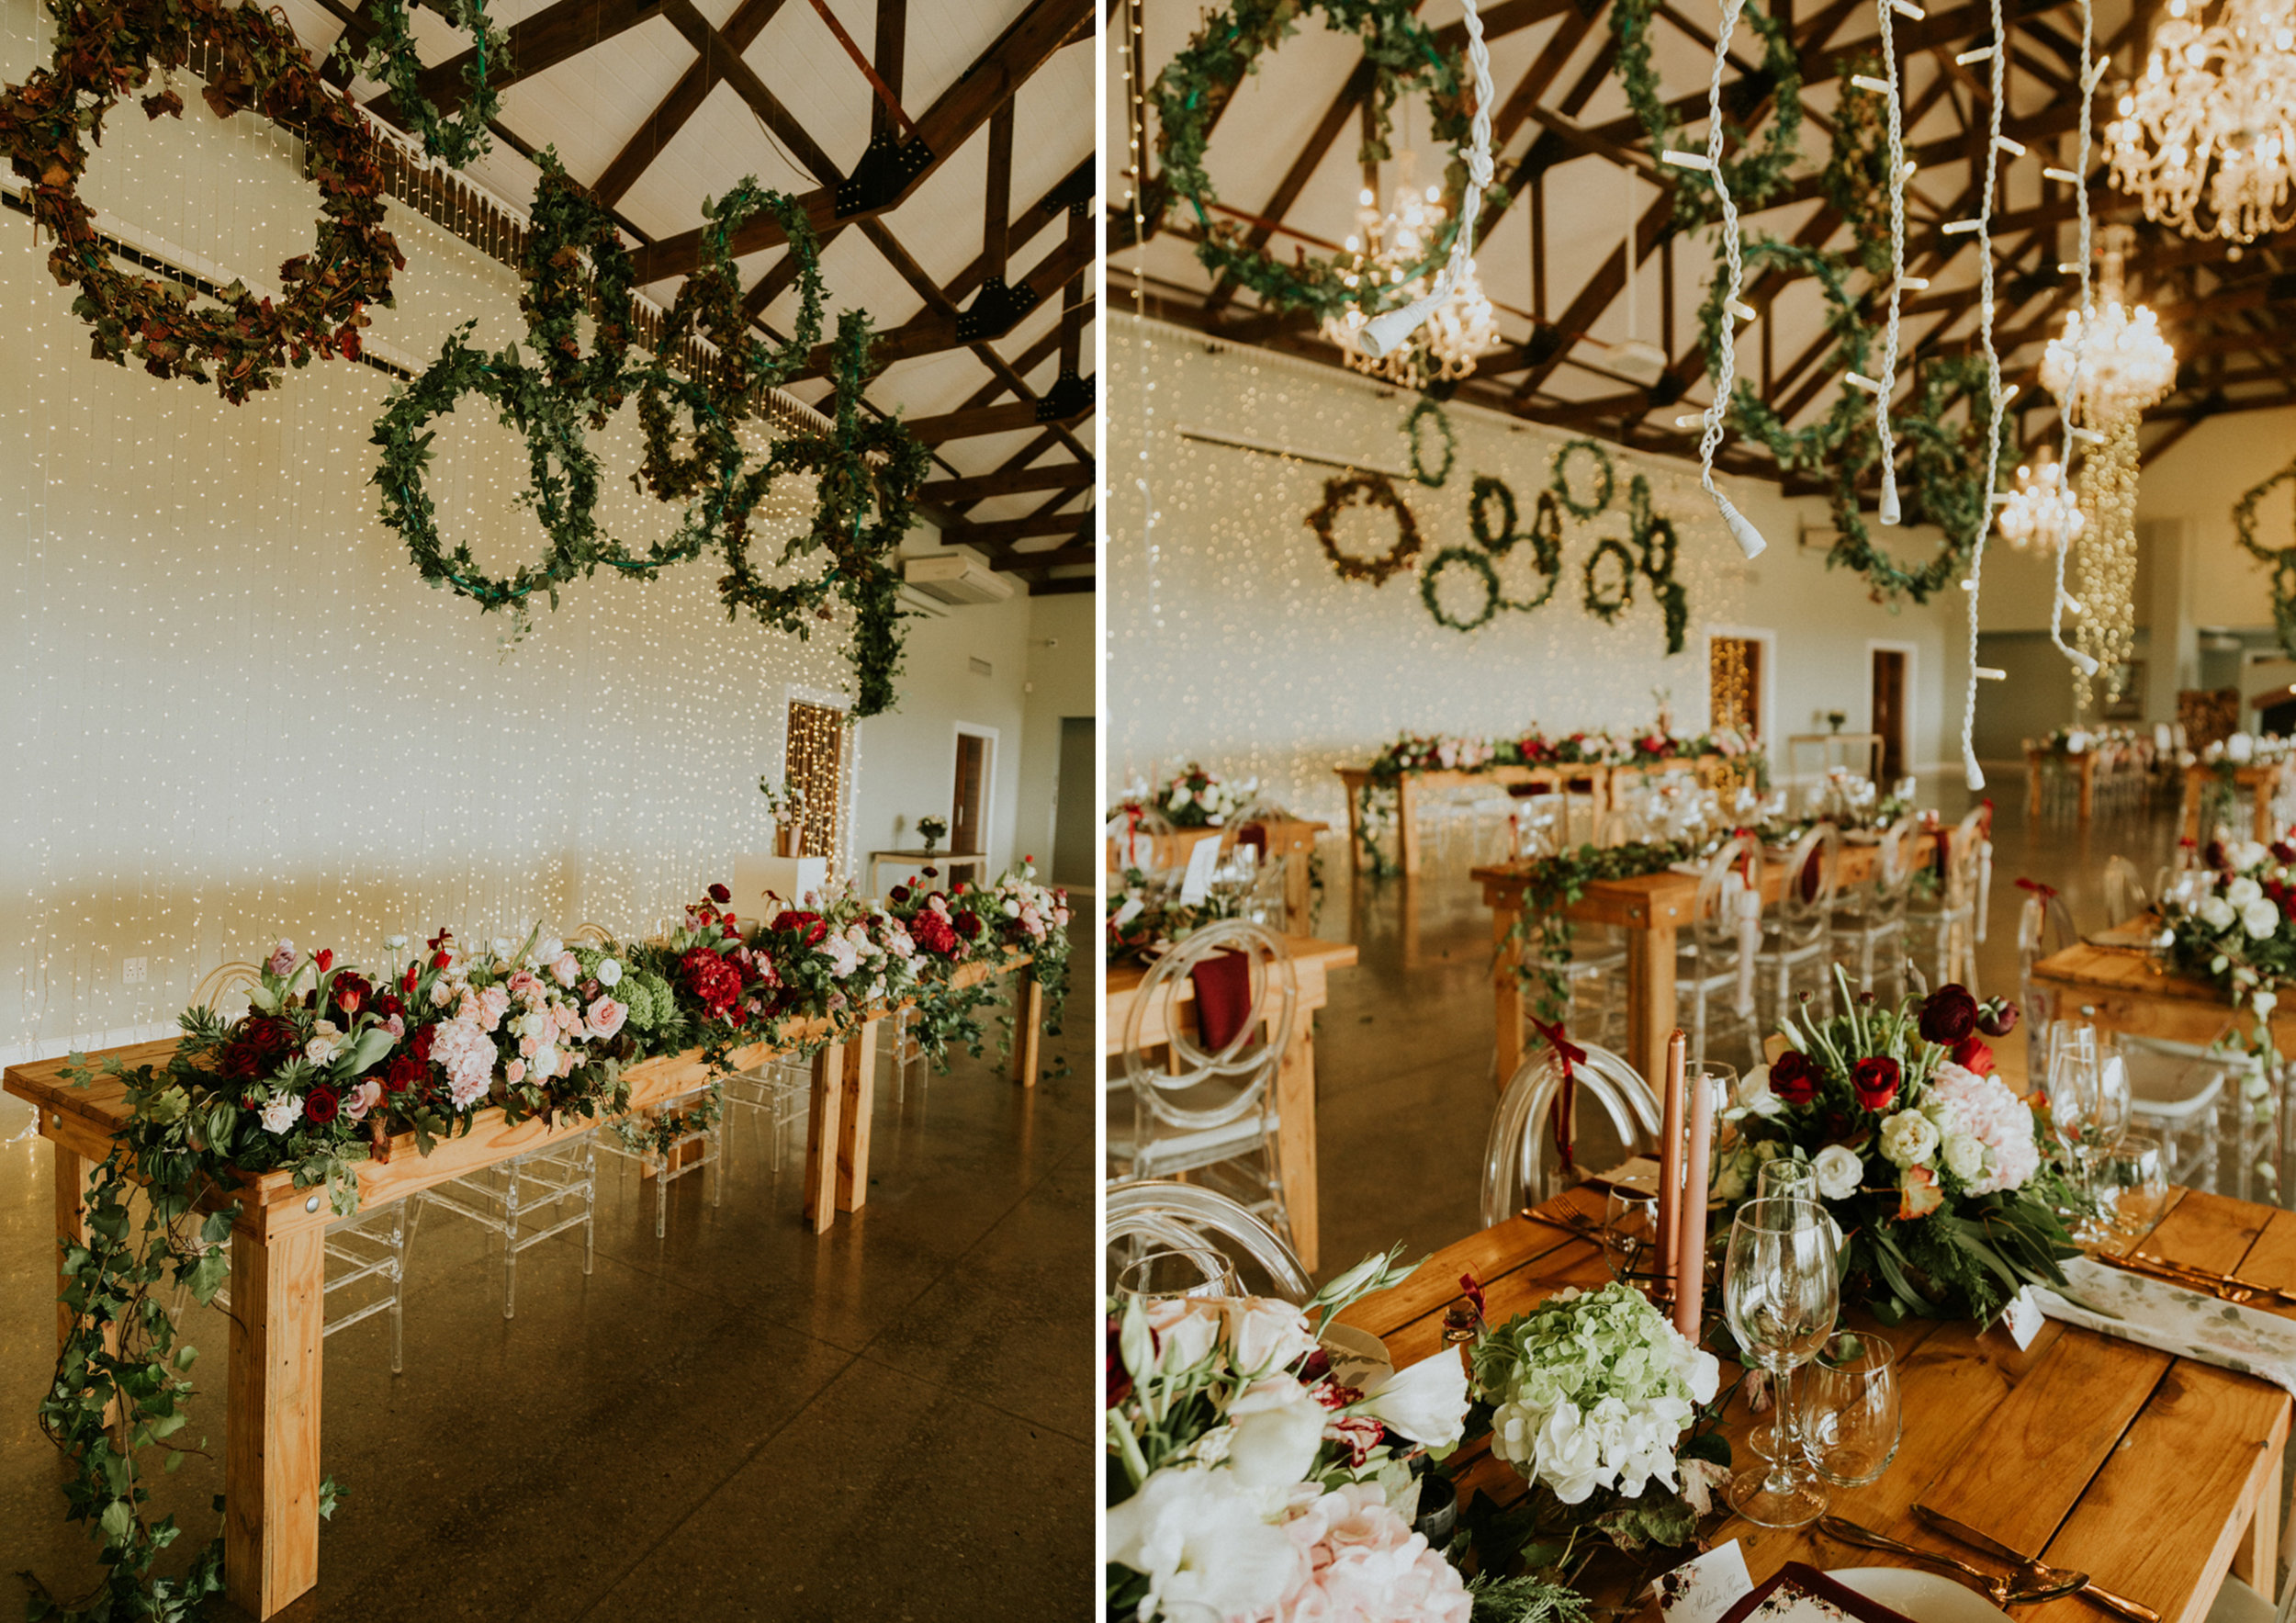 Cape Town Winter Wedding - Bianca Asher Photography-137.jpg